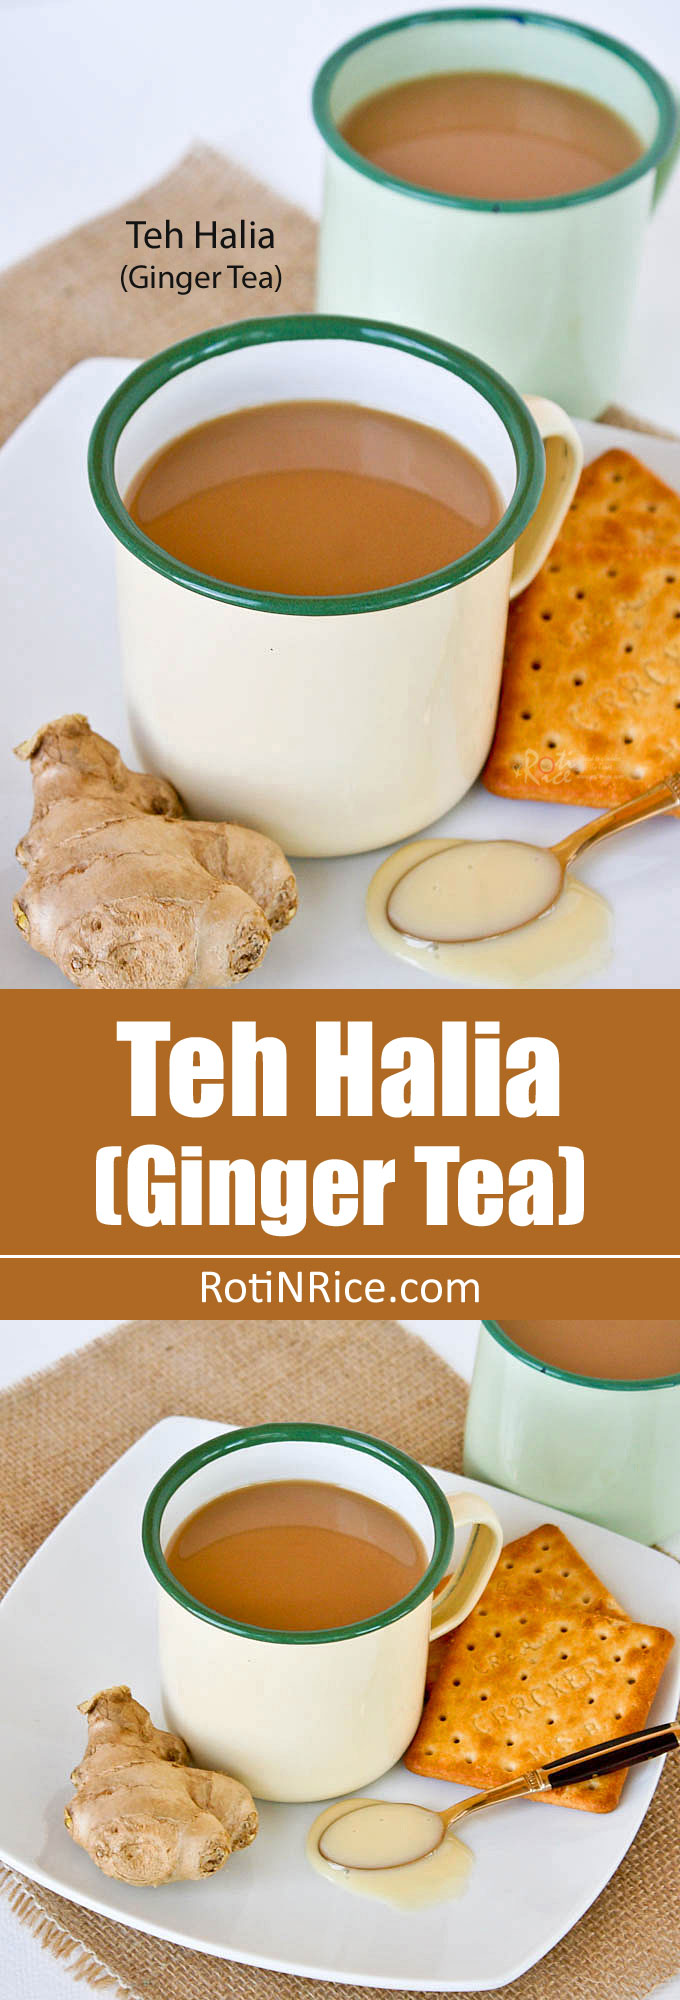 This comforting Teh Halia (Ginger Tea) with condensed milk will surely warm you up on chilly days. The ginger flavor can be as light or strong as desired. | RotiNRice.com